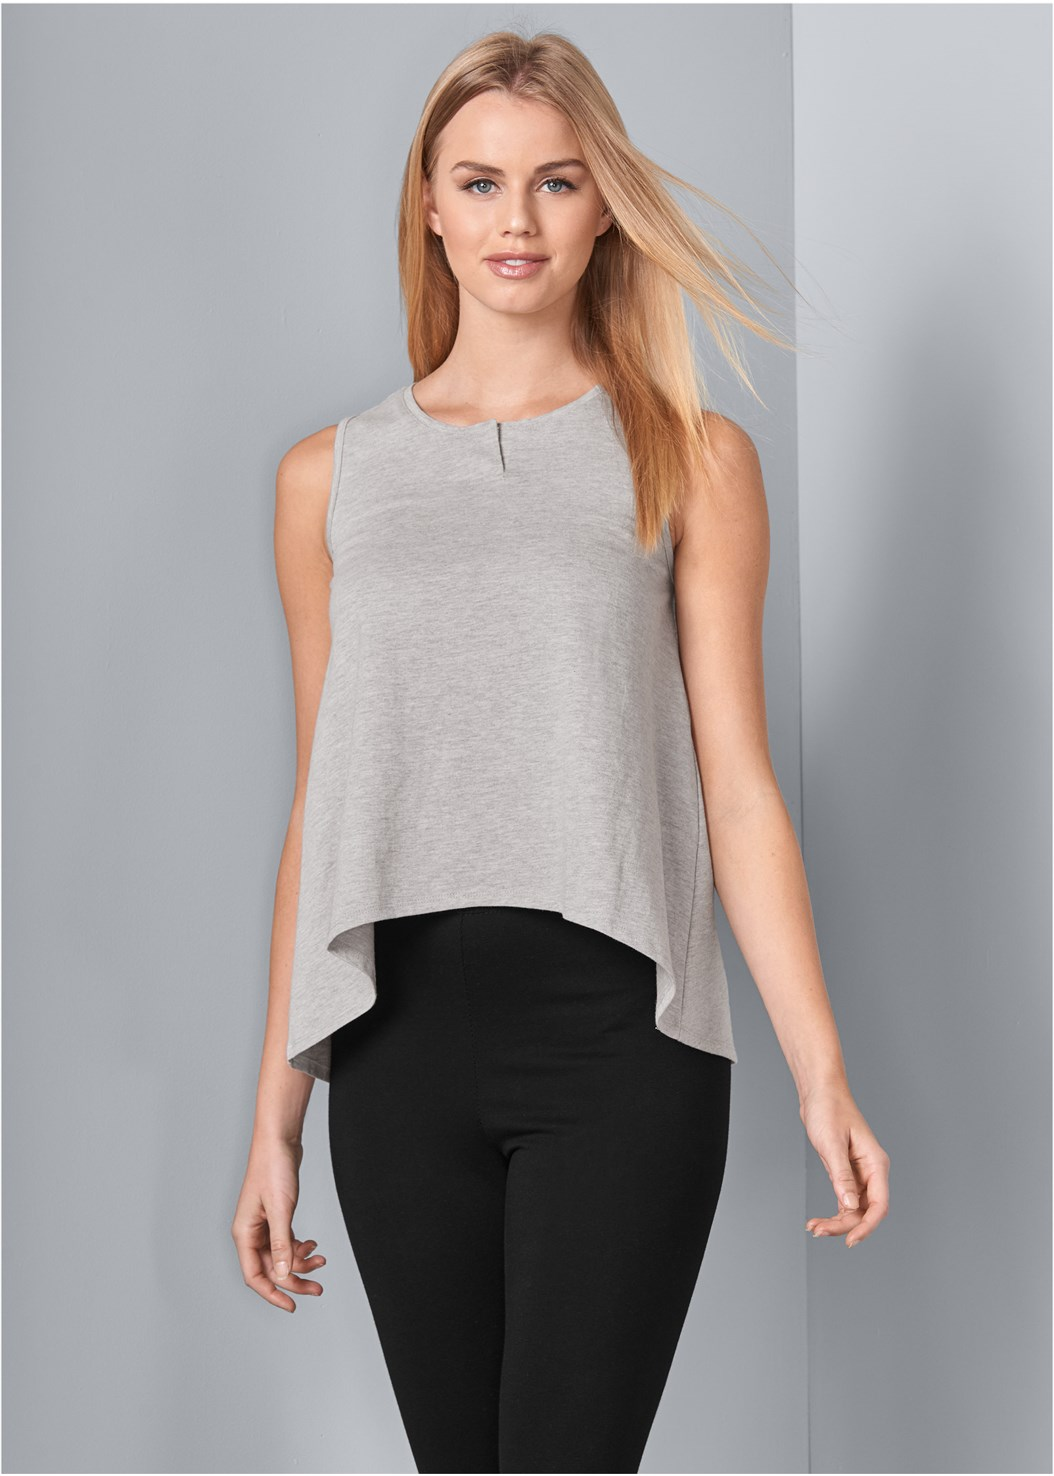 Sleep Tank,Basic Leggings